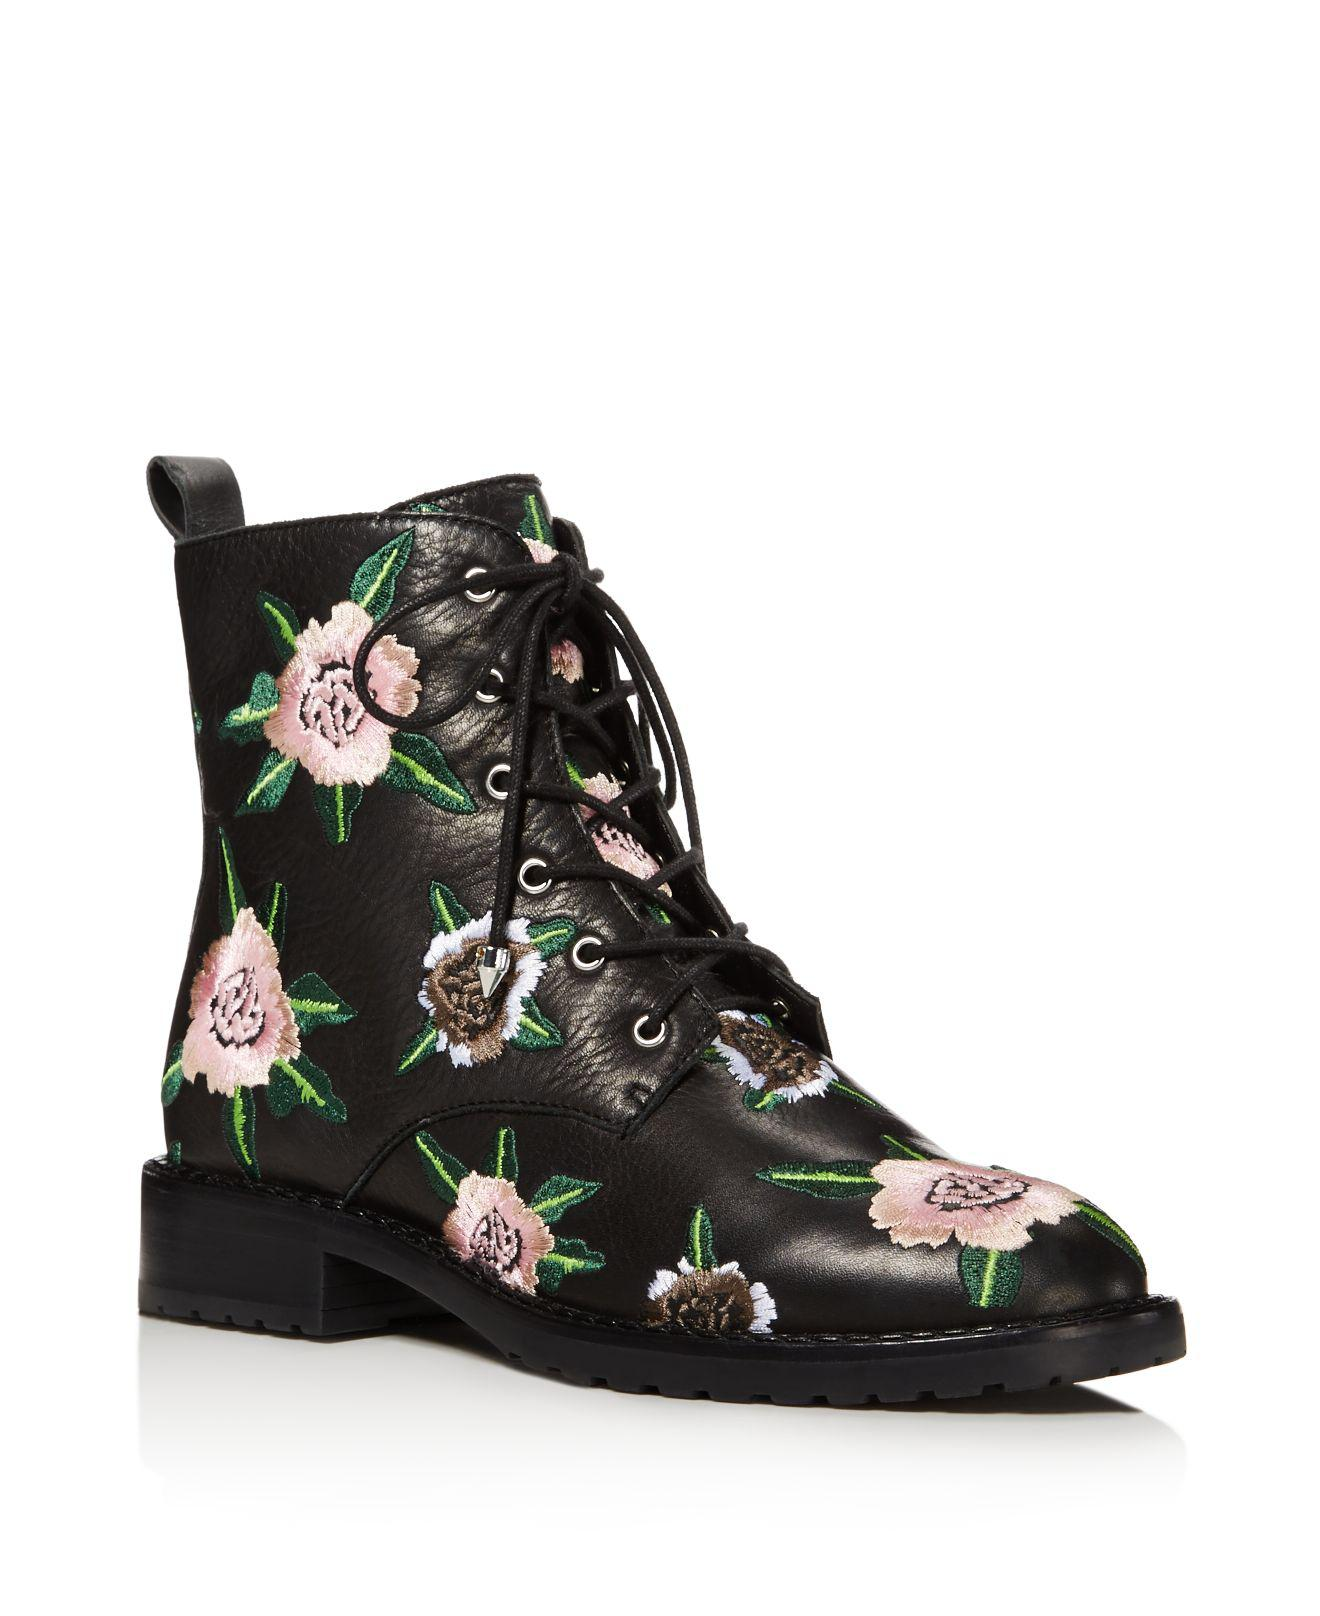 Rebecca Minkoff Embroidered Combat Boots free shipping authentic 0Lqx4FMC